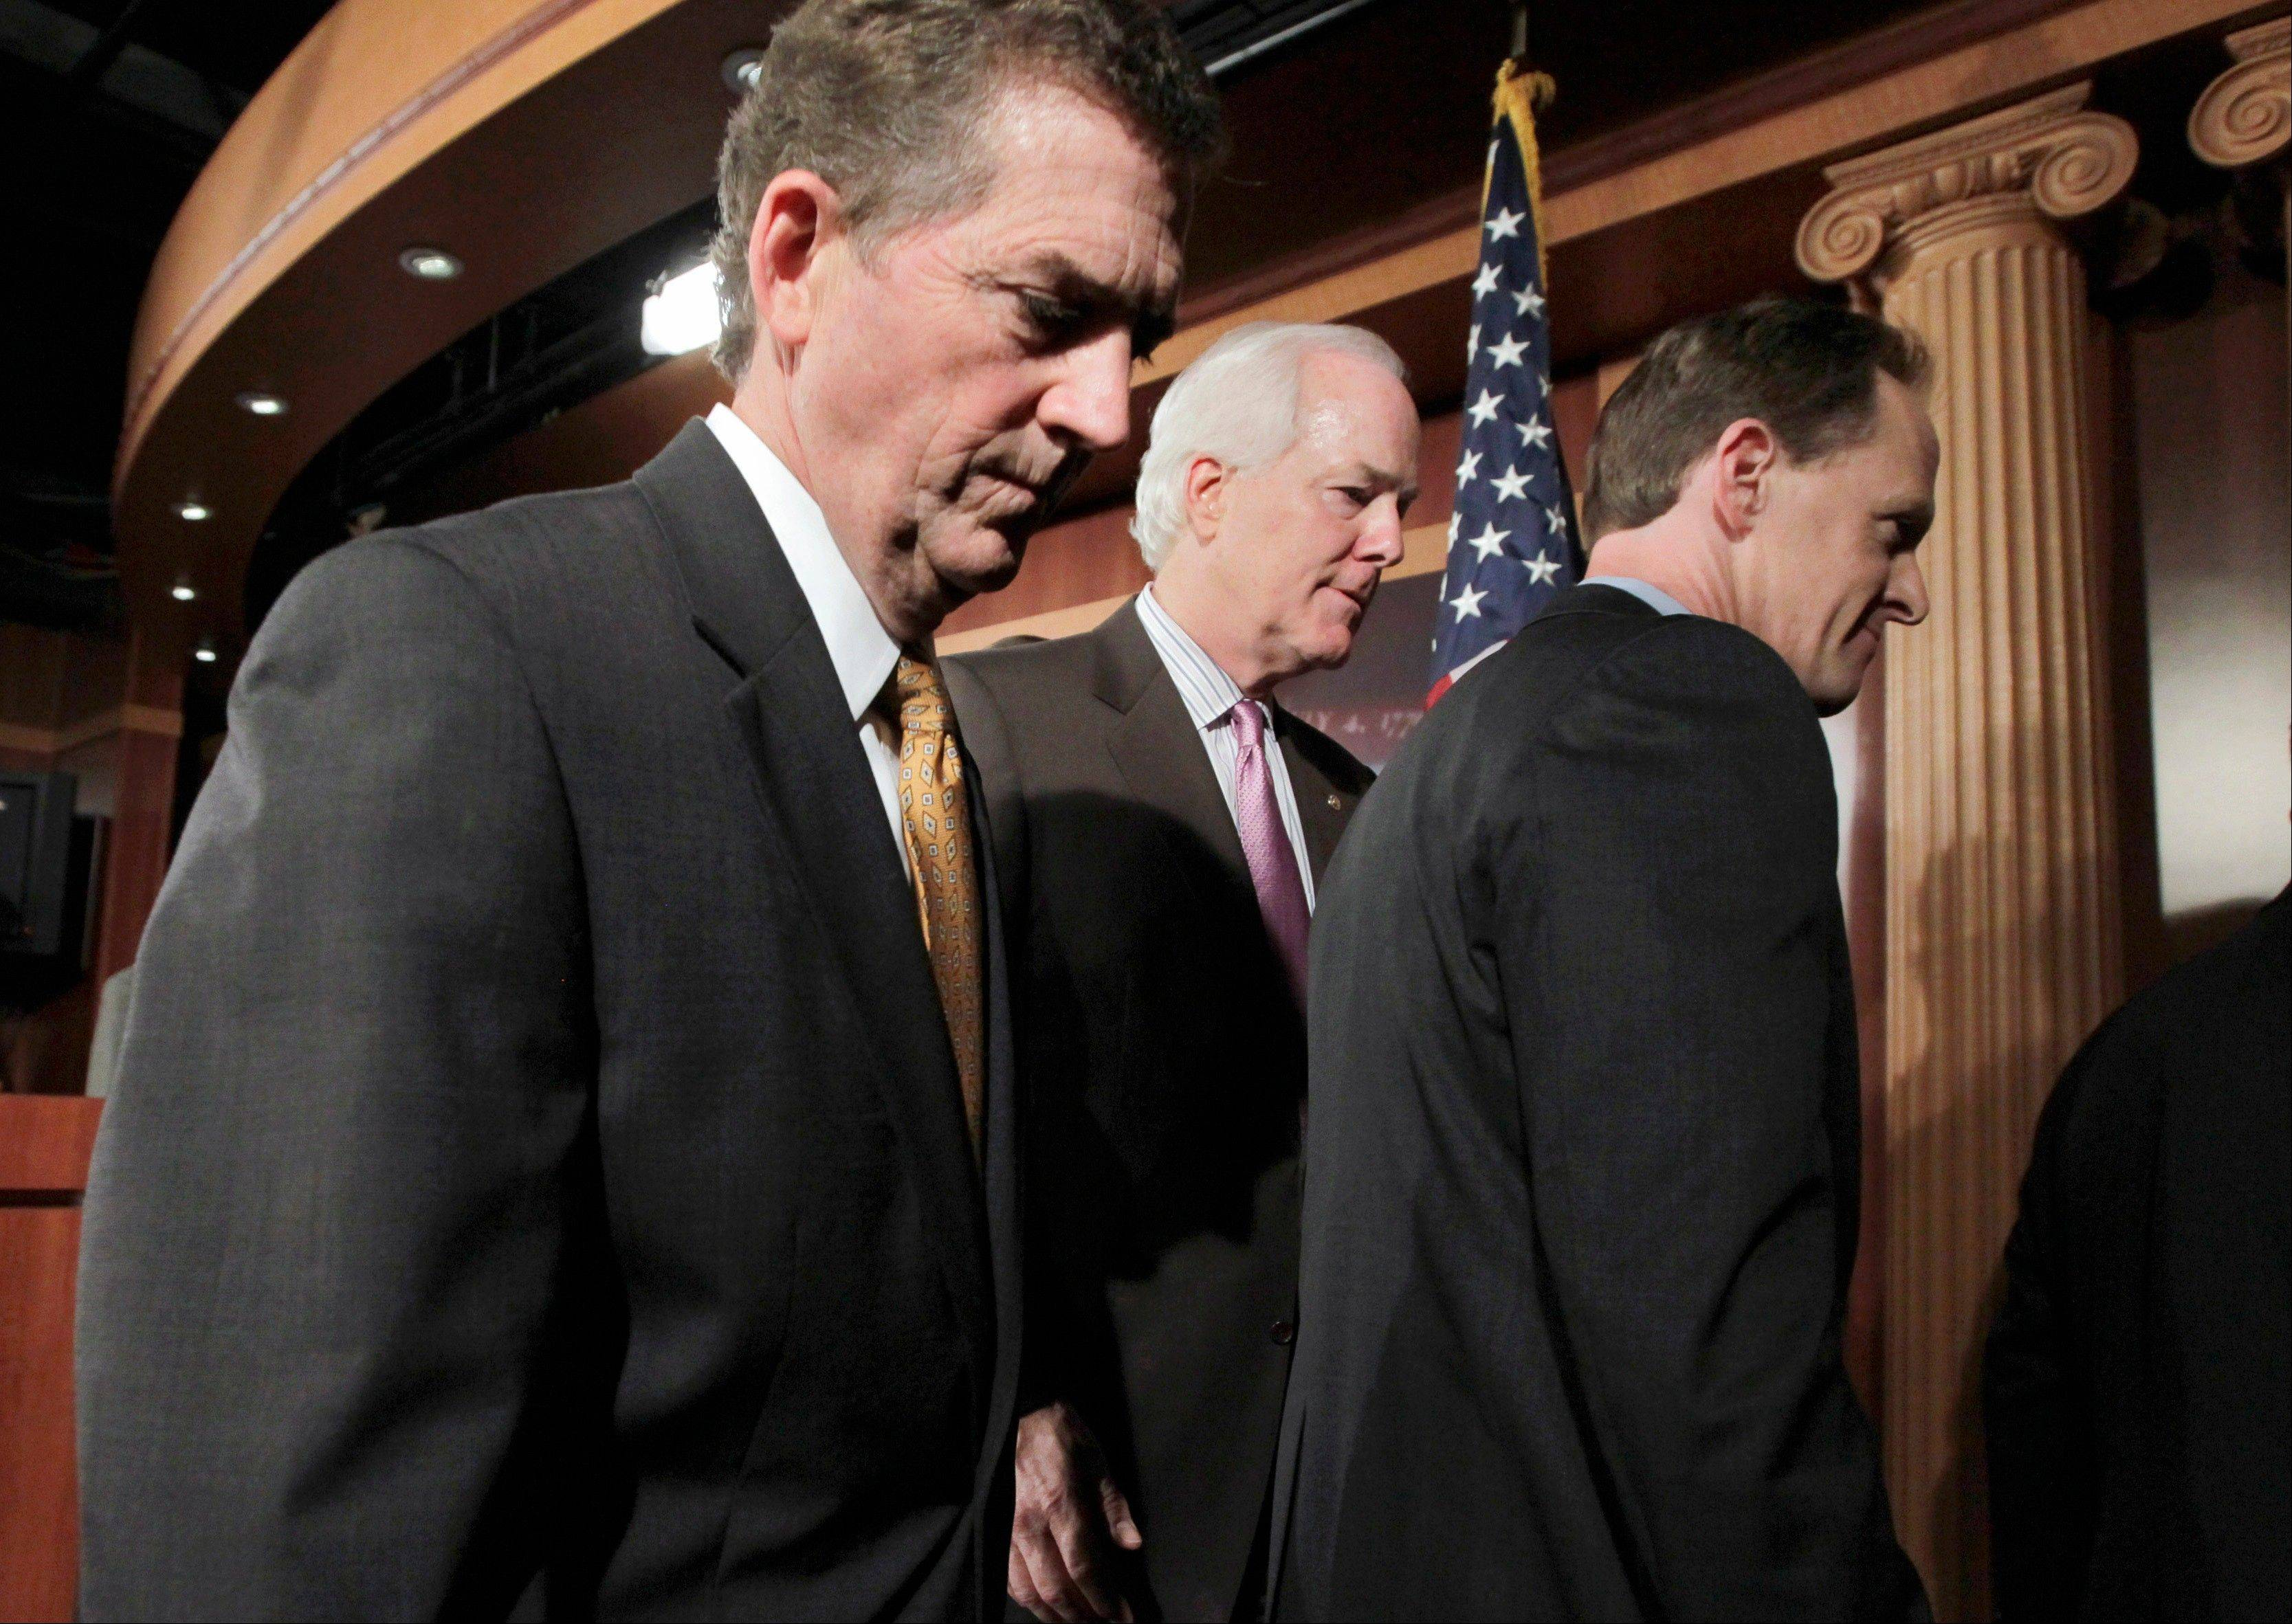 Sen. Jim DeMint, R-S.C., left, Sen. John Cornyn, R-Texas, and Sen. Pat Toomey, R-Pa., leave a news conference on Capitol Hill in Washington where they and other GOP senators said they want to forgo the holiday recess to stay in Washington and work on the debt crisis.